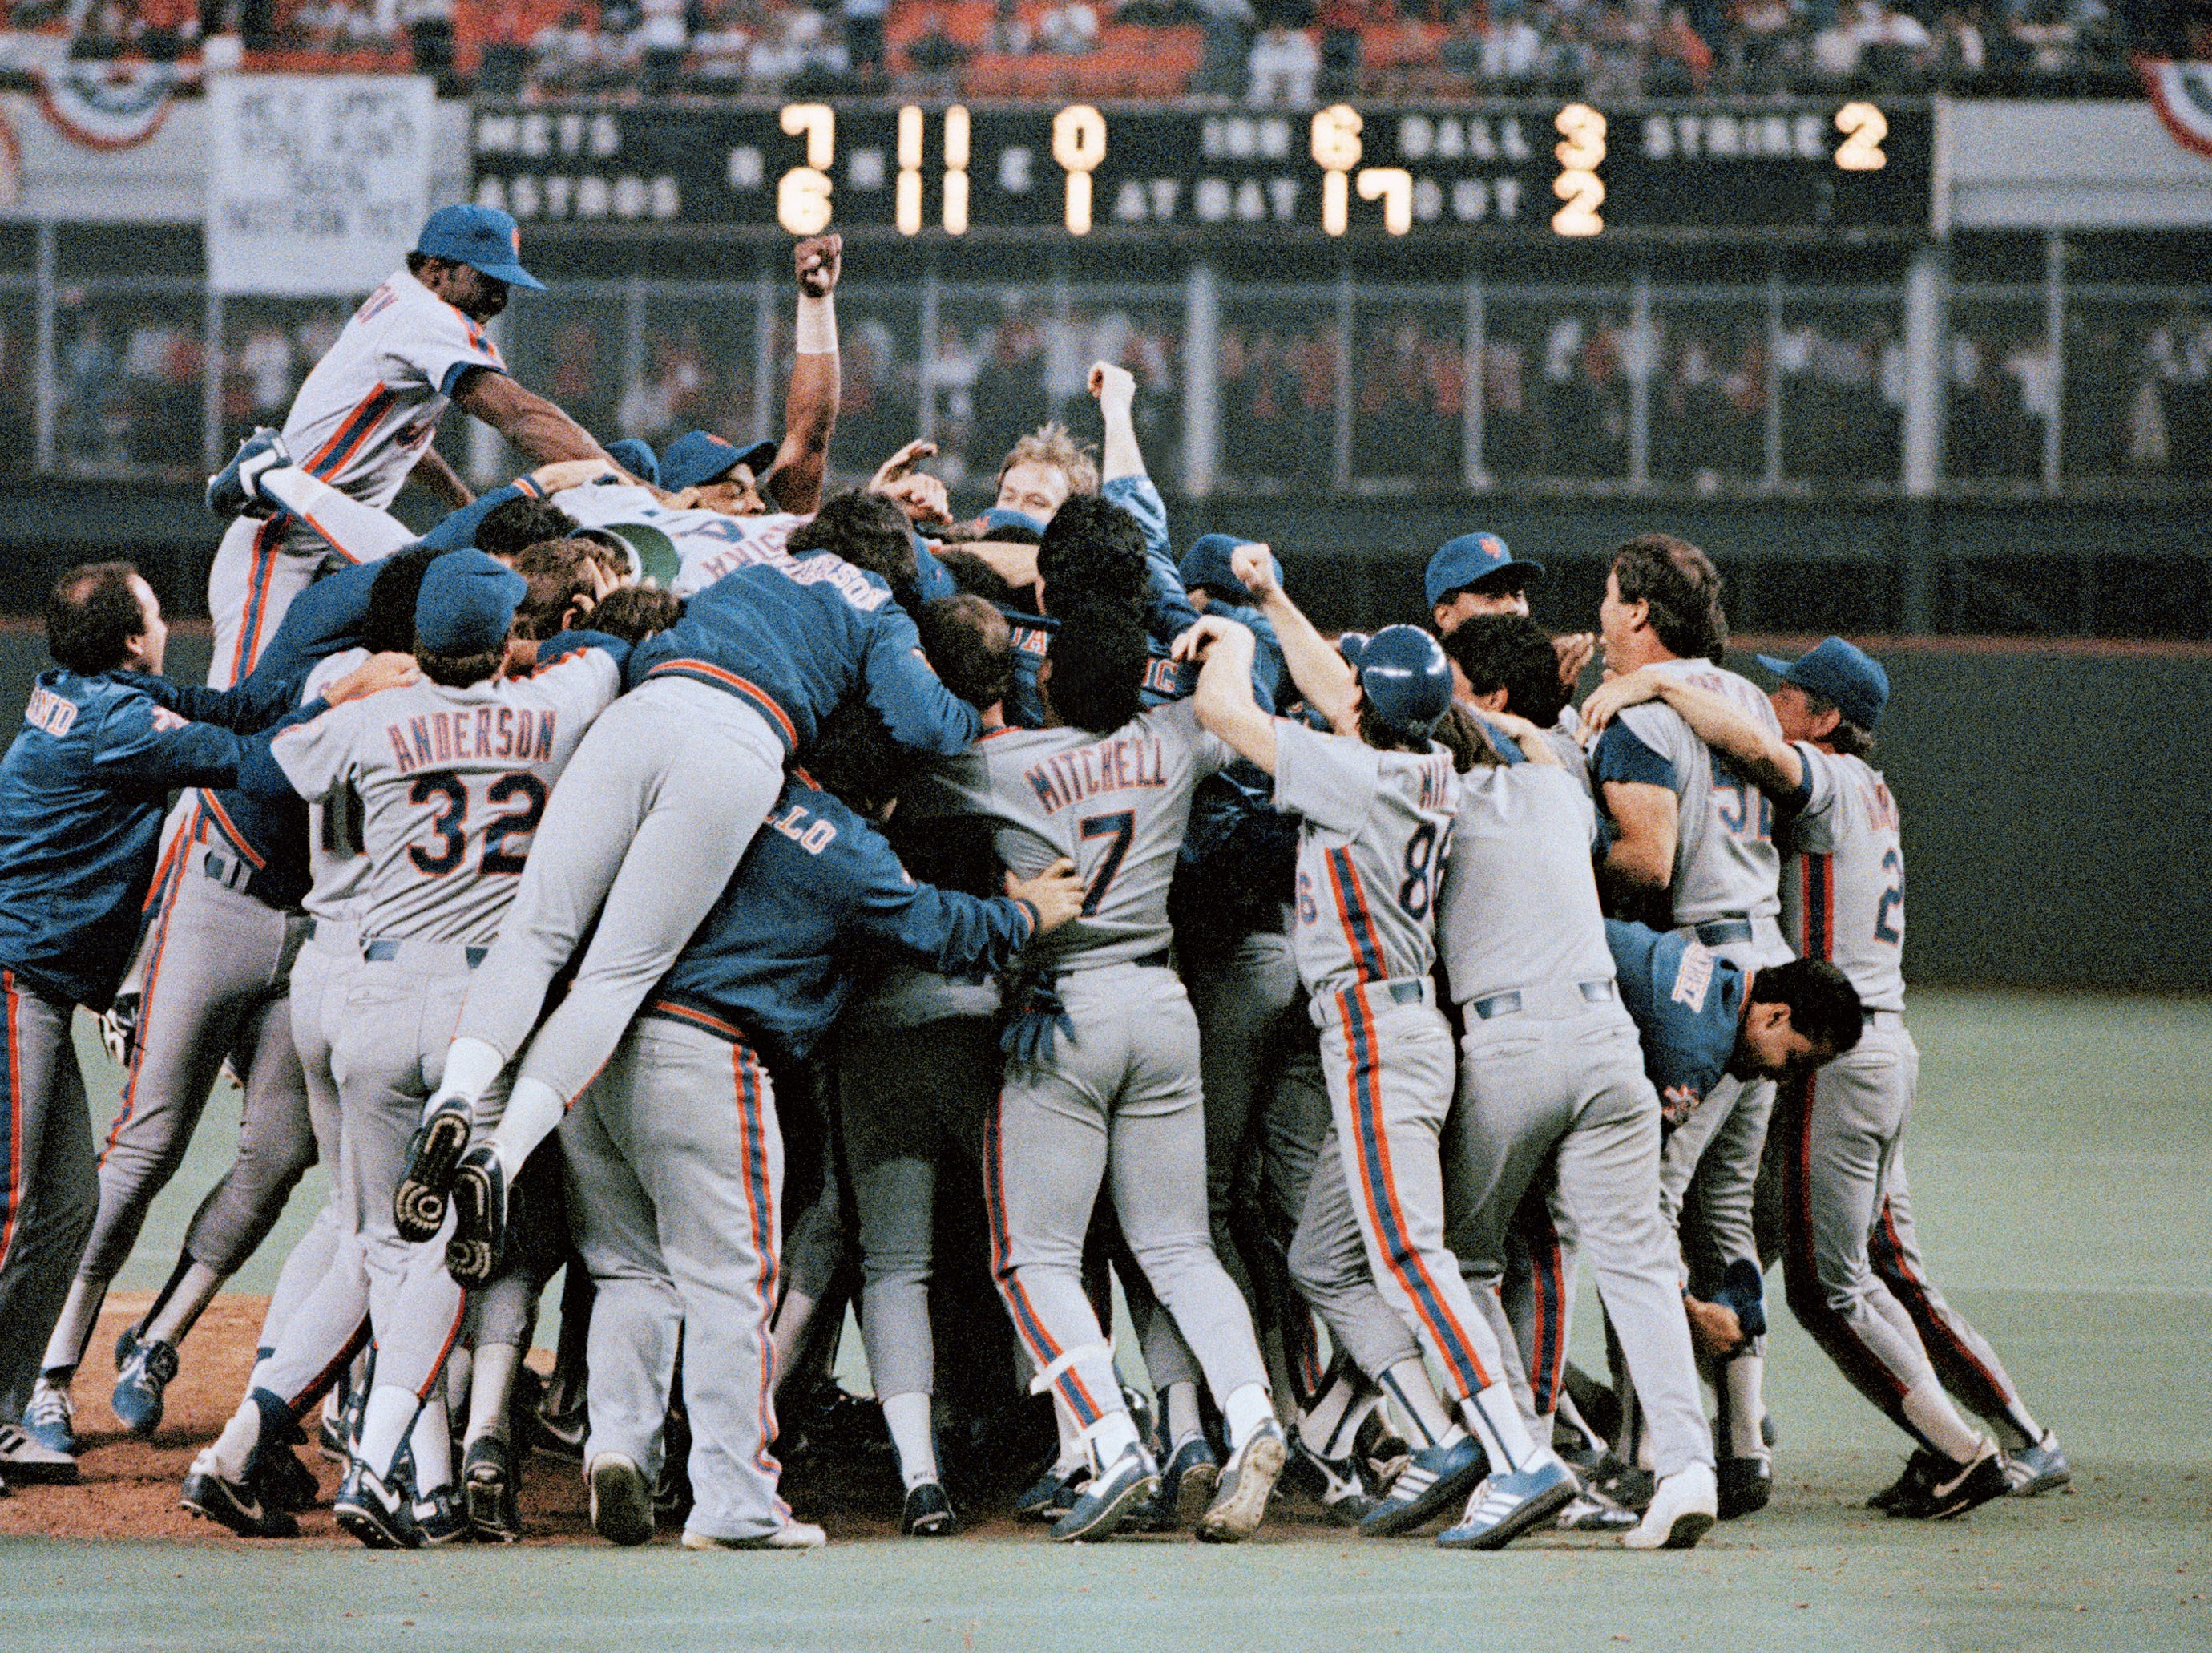 1986 NLCS Game 6: In what some consider the greatest game in baseball history, the Mets outlasted the Astros in 16 innings to book their ticket to the World Series.